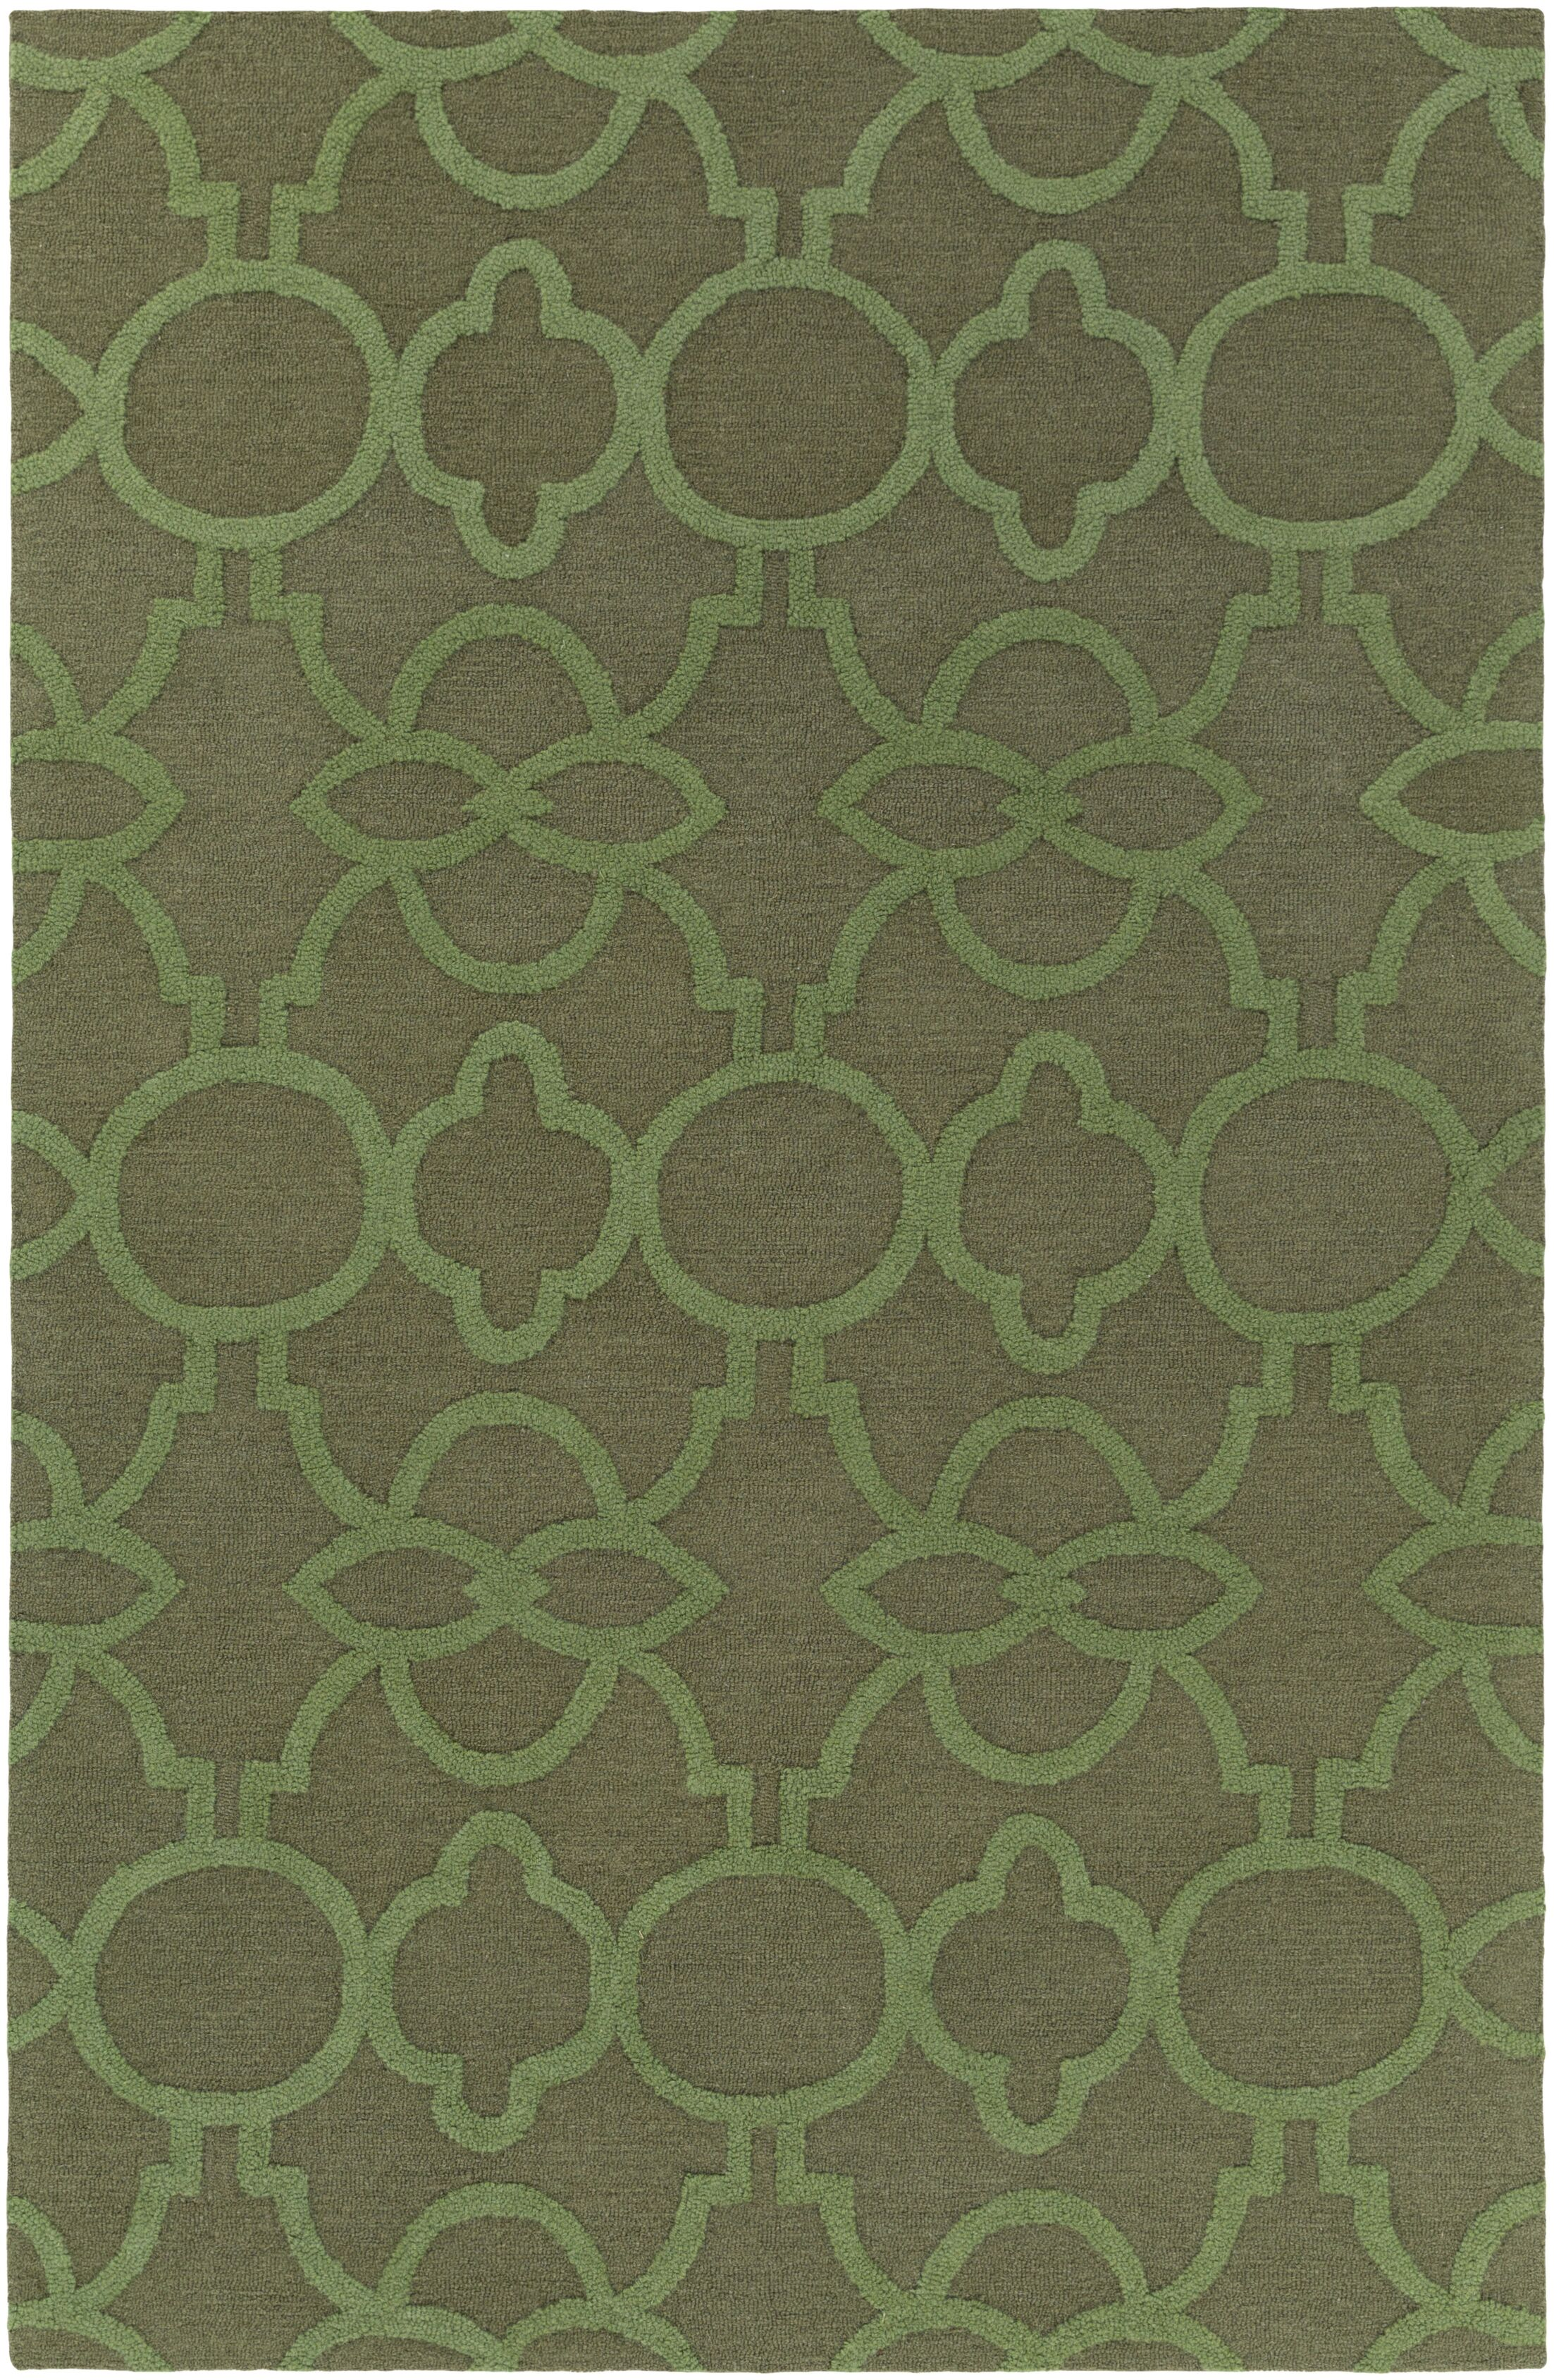 Sandi Hand-Crafted Olive Green Area Rug Rug Size: Rectangle 7'6